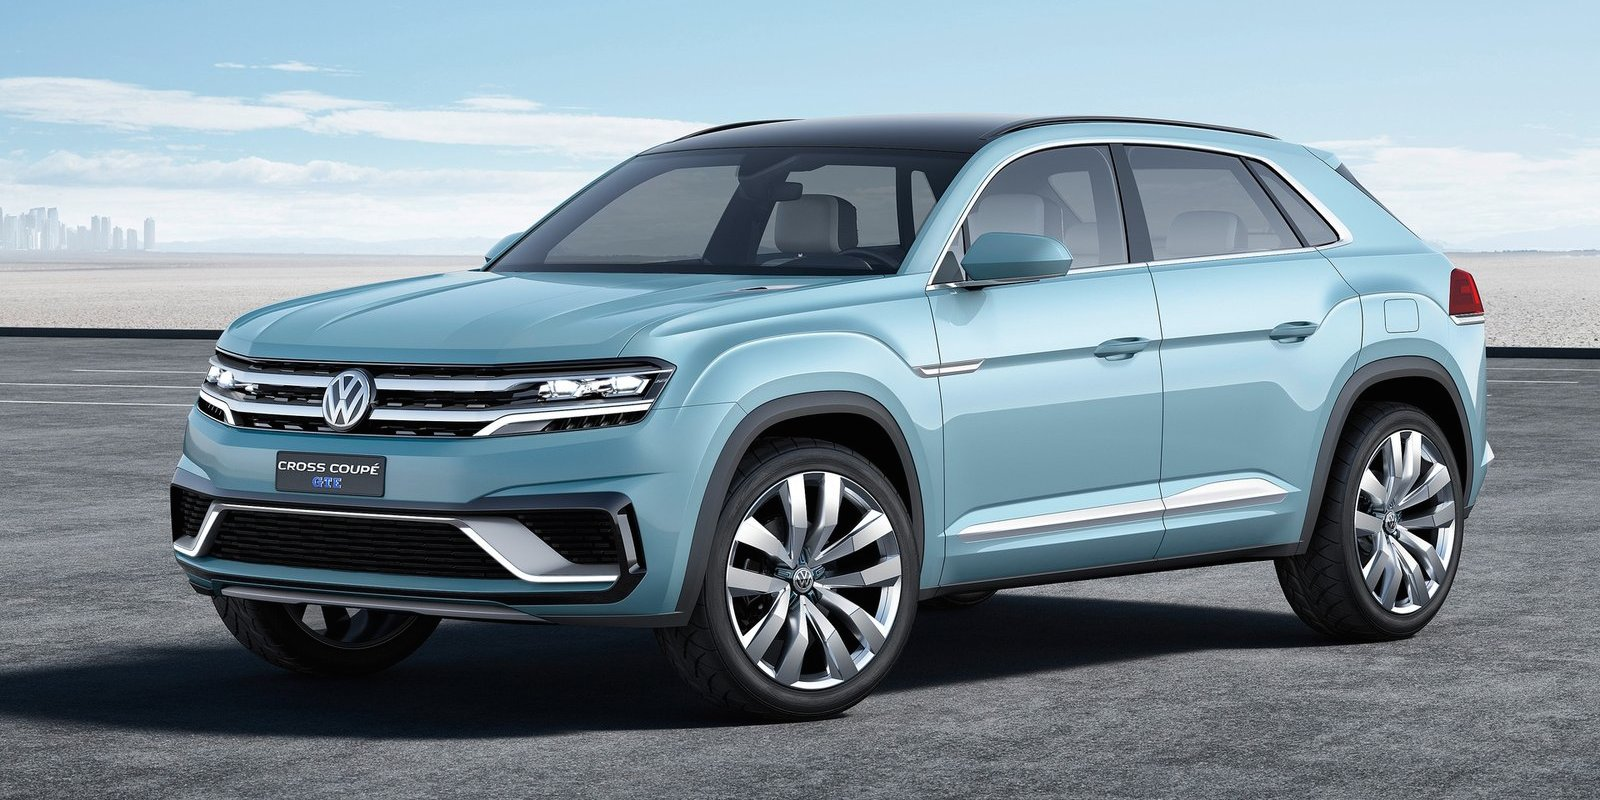 2017 Volkswagen Tiguan seven-seater confirmed to be built ...